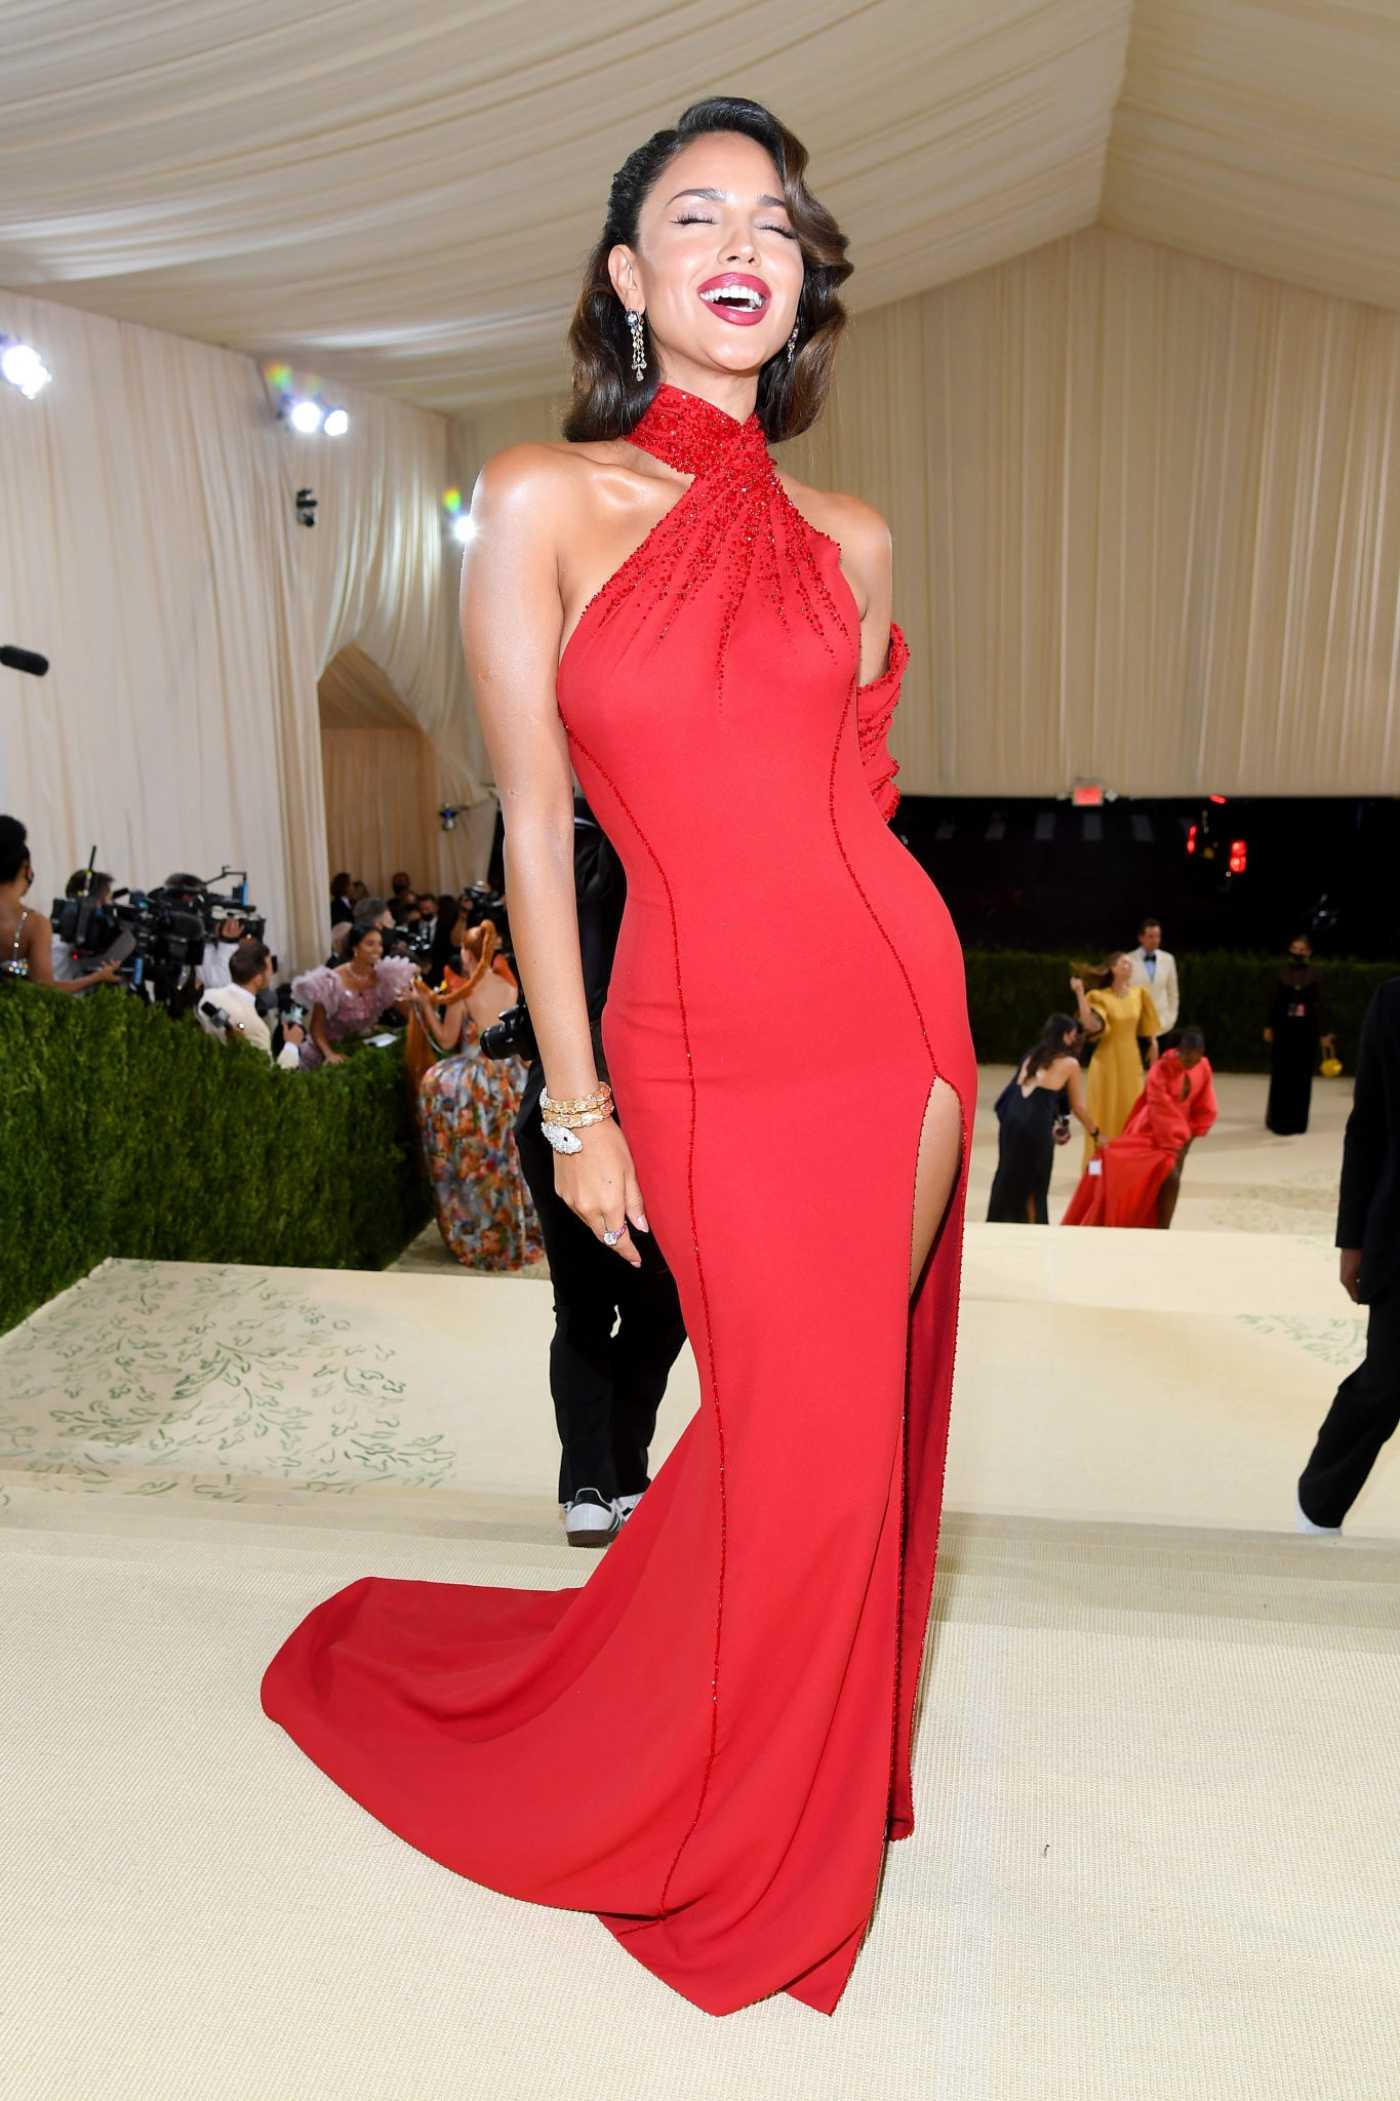 Eiza Gonzalez Attends 2021 Met Gala In America: A Lexicon of Fashion at Metropolitan Museum of Art in New York City 09/13/2021